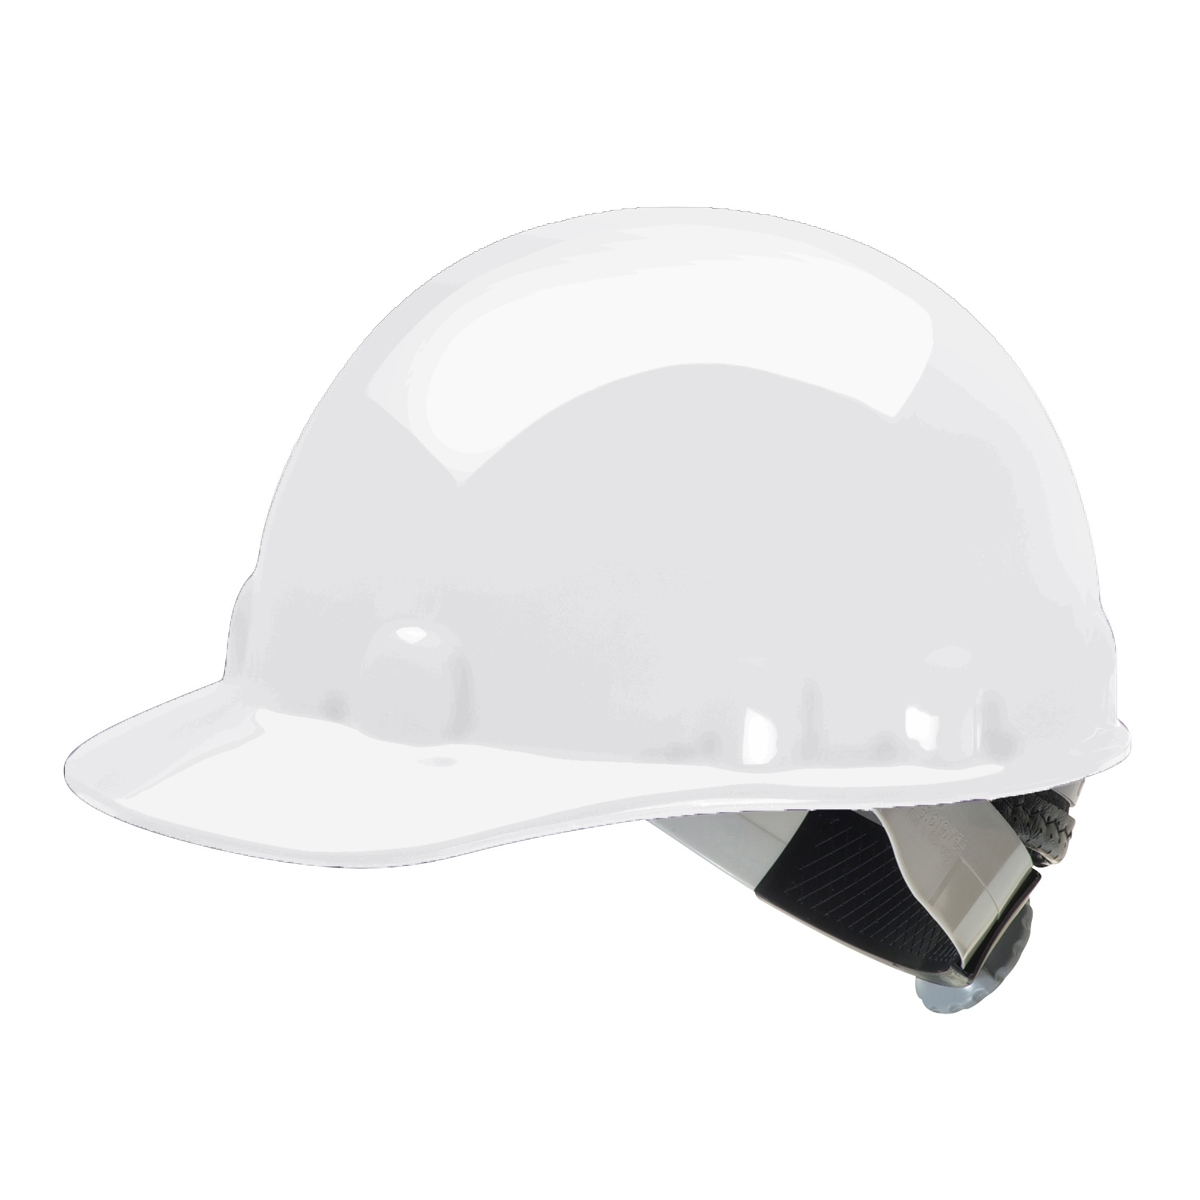 Fibre Metal E2SW Hard Hat with SwingStrap Suspension, White, NOOTER Logo